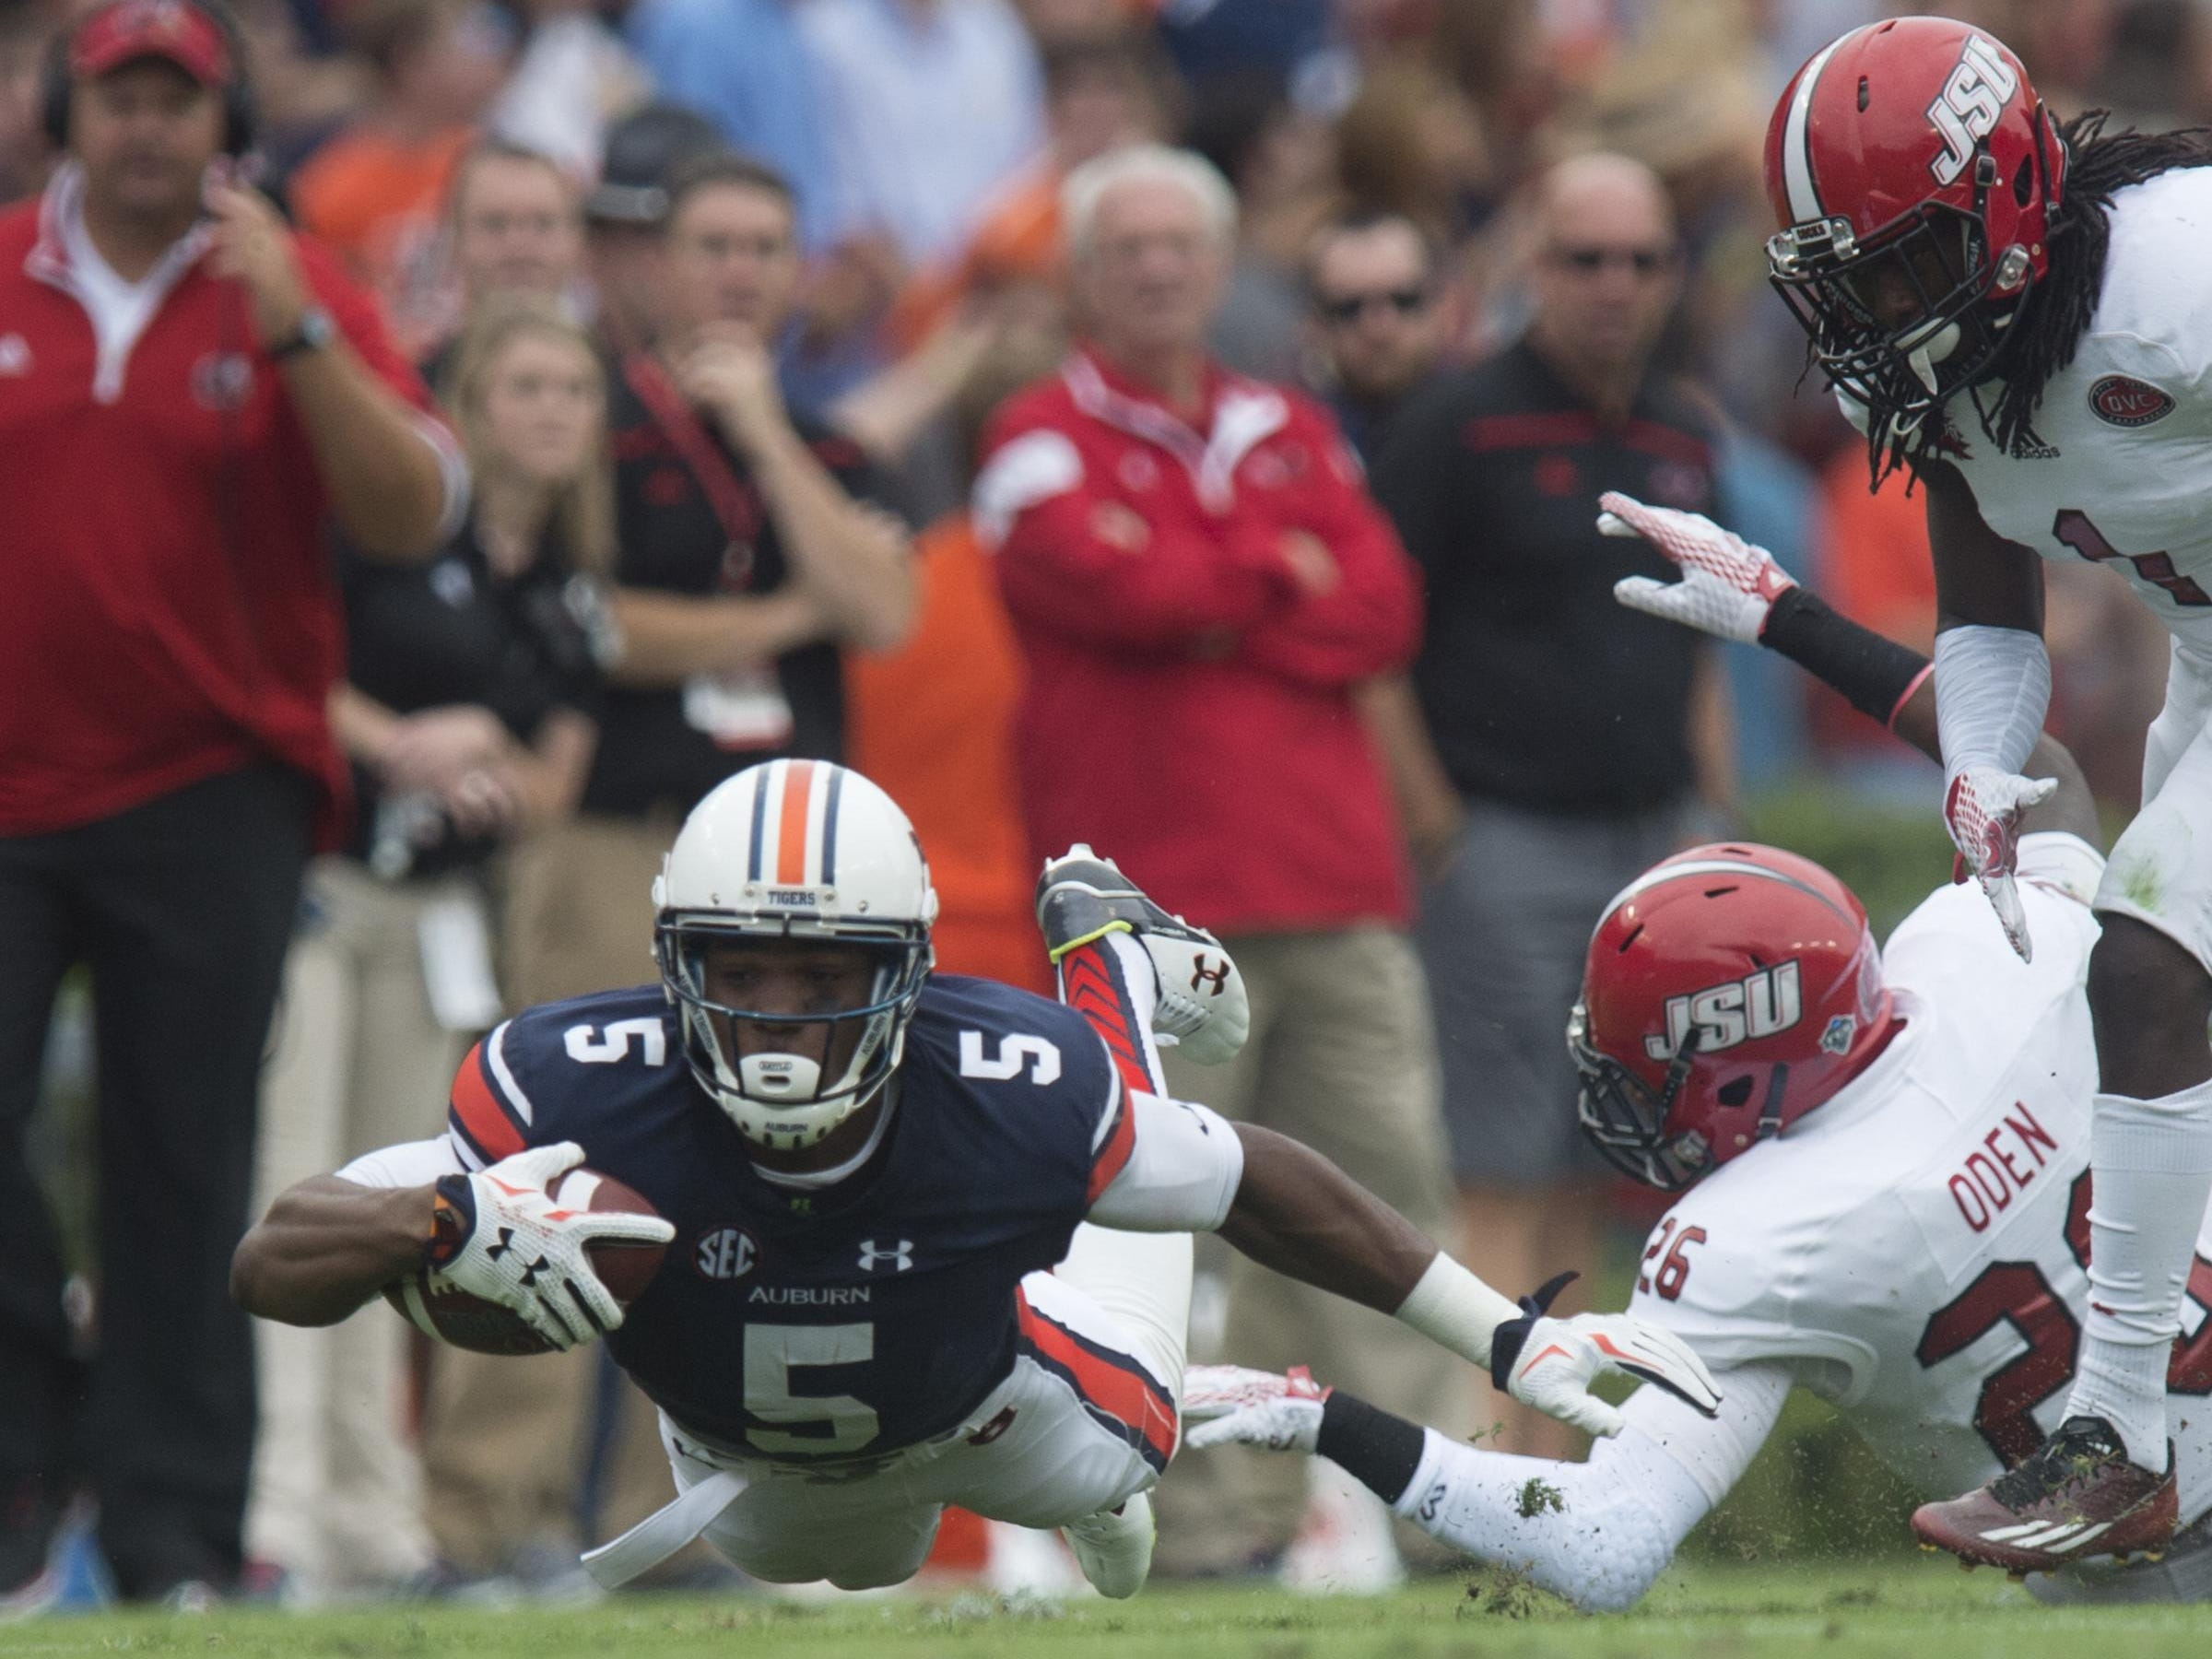 Auburn Tigers wide receiver Ricardo Louis (5) dives forwards as Jacksonville State Gamecocks safety Santavious Oden (26) tackles him during the first half of the NCAA Auburn vs. Jacksonville State on Saturday, Sept. 12, 2015, in at Jordan-Hare Stadium in Auburn, Ala.Albert Cesare / Advertiser